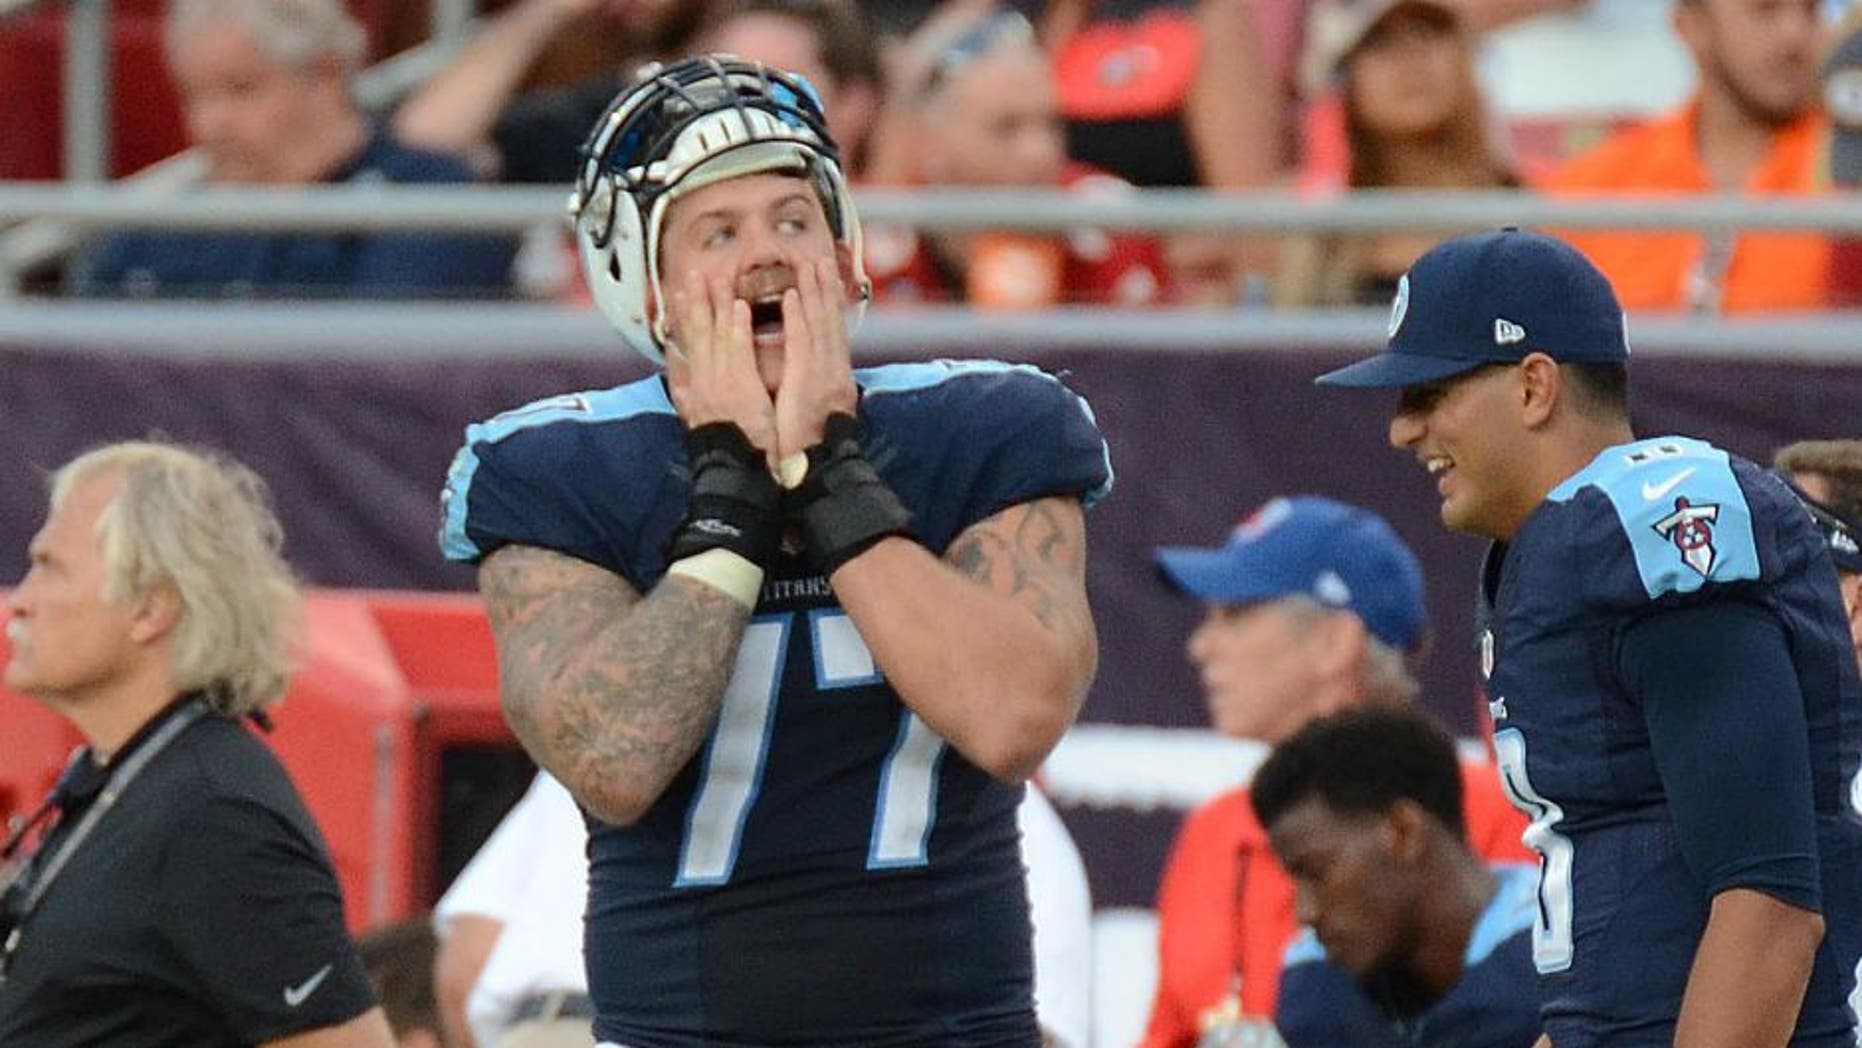 Sep 13, 2015; Tampa, FL, USA; Tennessee Titans quarterback Marcus Mariota (8) and linemen Taylor Lewan (77) react on the sideline in the second half during their game against the Tampa Bay Buccaneers at Raymond James Stadium. The Titans defeated the Buccaneers 42-14. Mandatory Credit: Jonathan Dyer-USA TODAY Sports